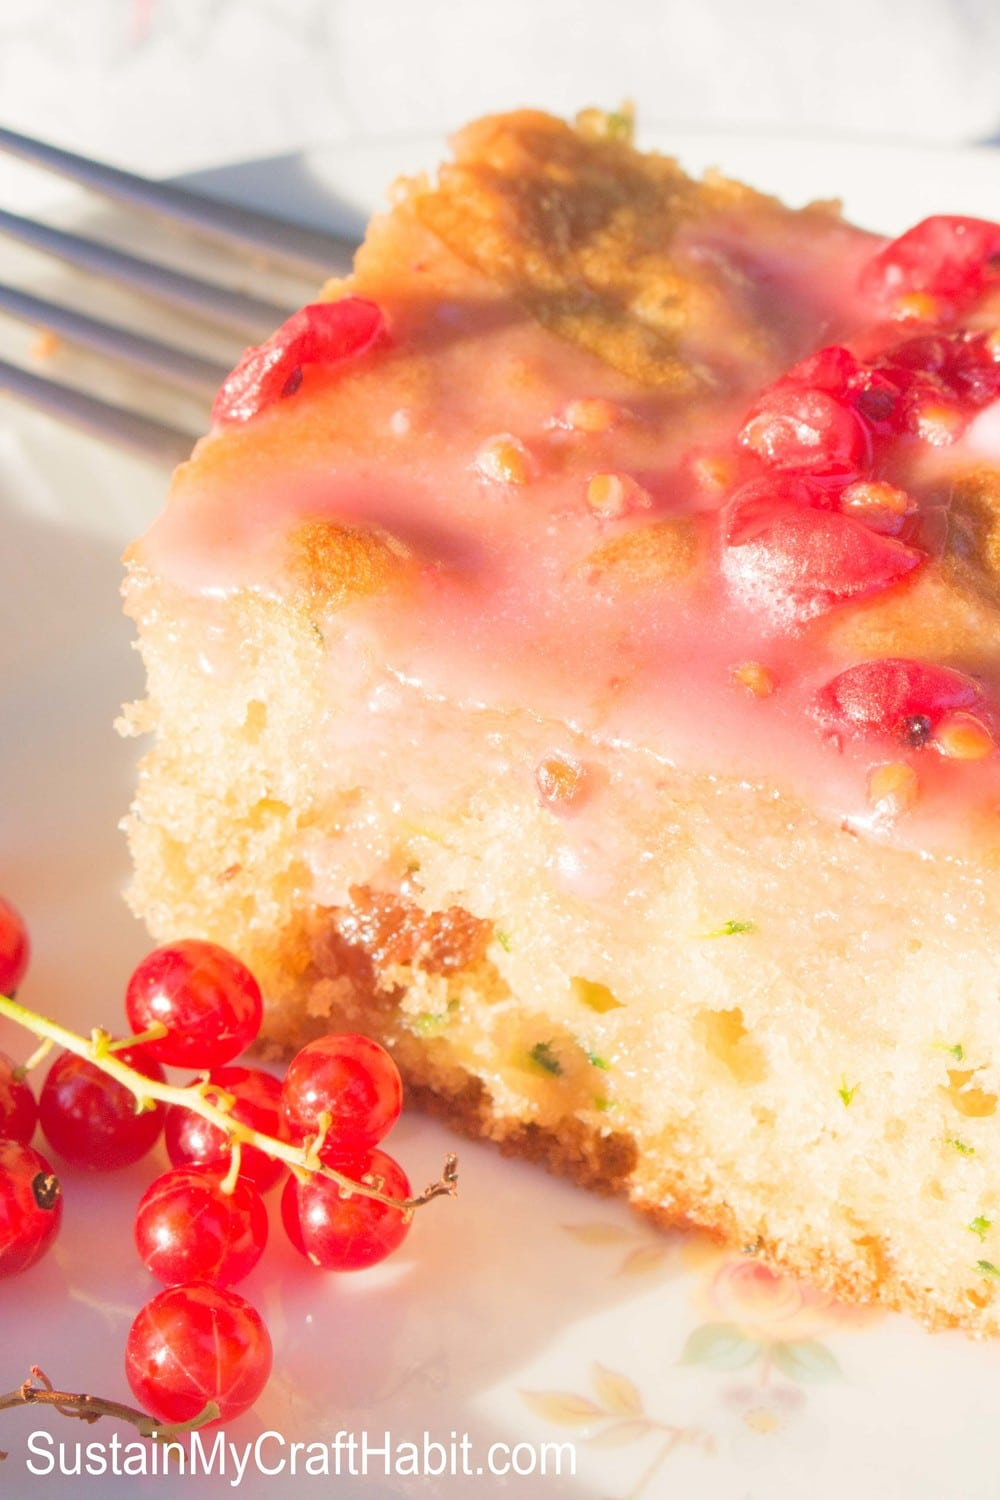 This easy zucchini cake recipe is a delicious dessert alternative to zucchini bread. Filled with tart berries of your choice such as currants and raspberries, and topped with a simple icing sugar glaze, it's perfect for potlucks, picnics and summer BBQs! #zucchini #zuchinni #cake #sweet #familyfriendlyrecipe #redcurrants #zucchinicake #sustainmycookinghabit